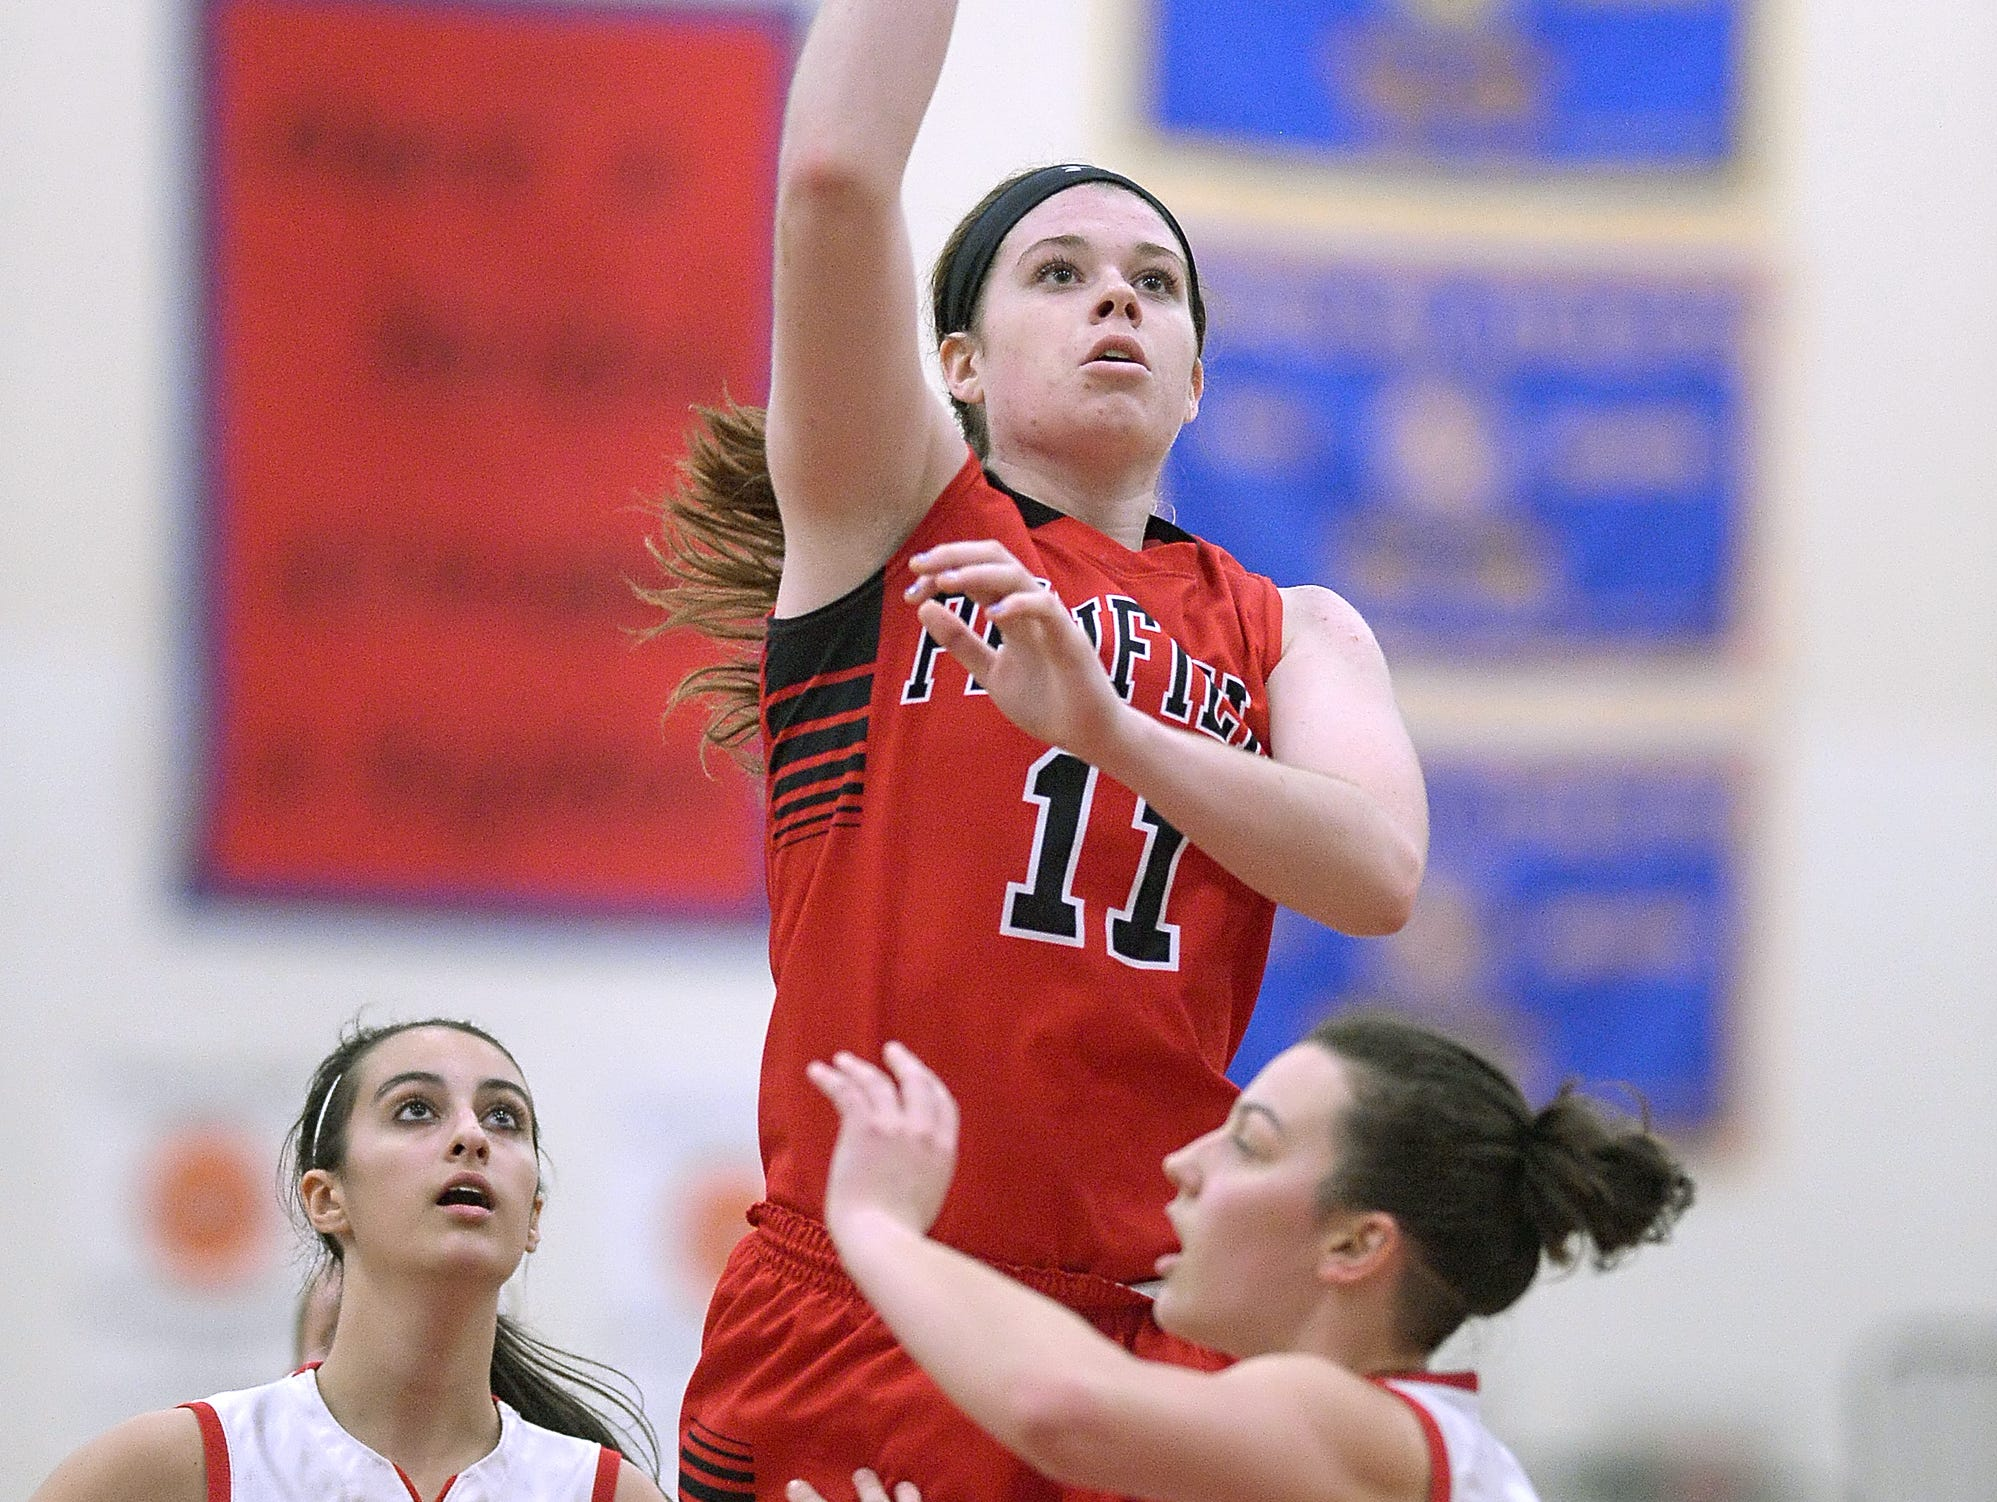 Penfield's Emma Guy shoots over Fairport's Hannah Ribble during regular season game played at Fairport High School on Tuesday.